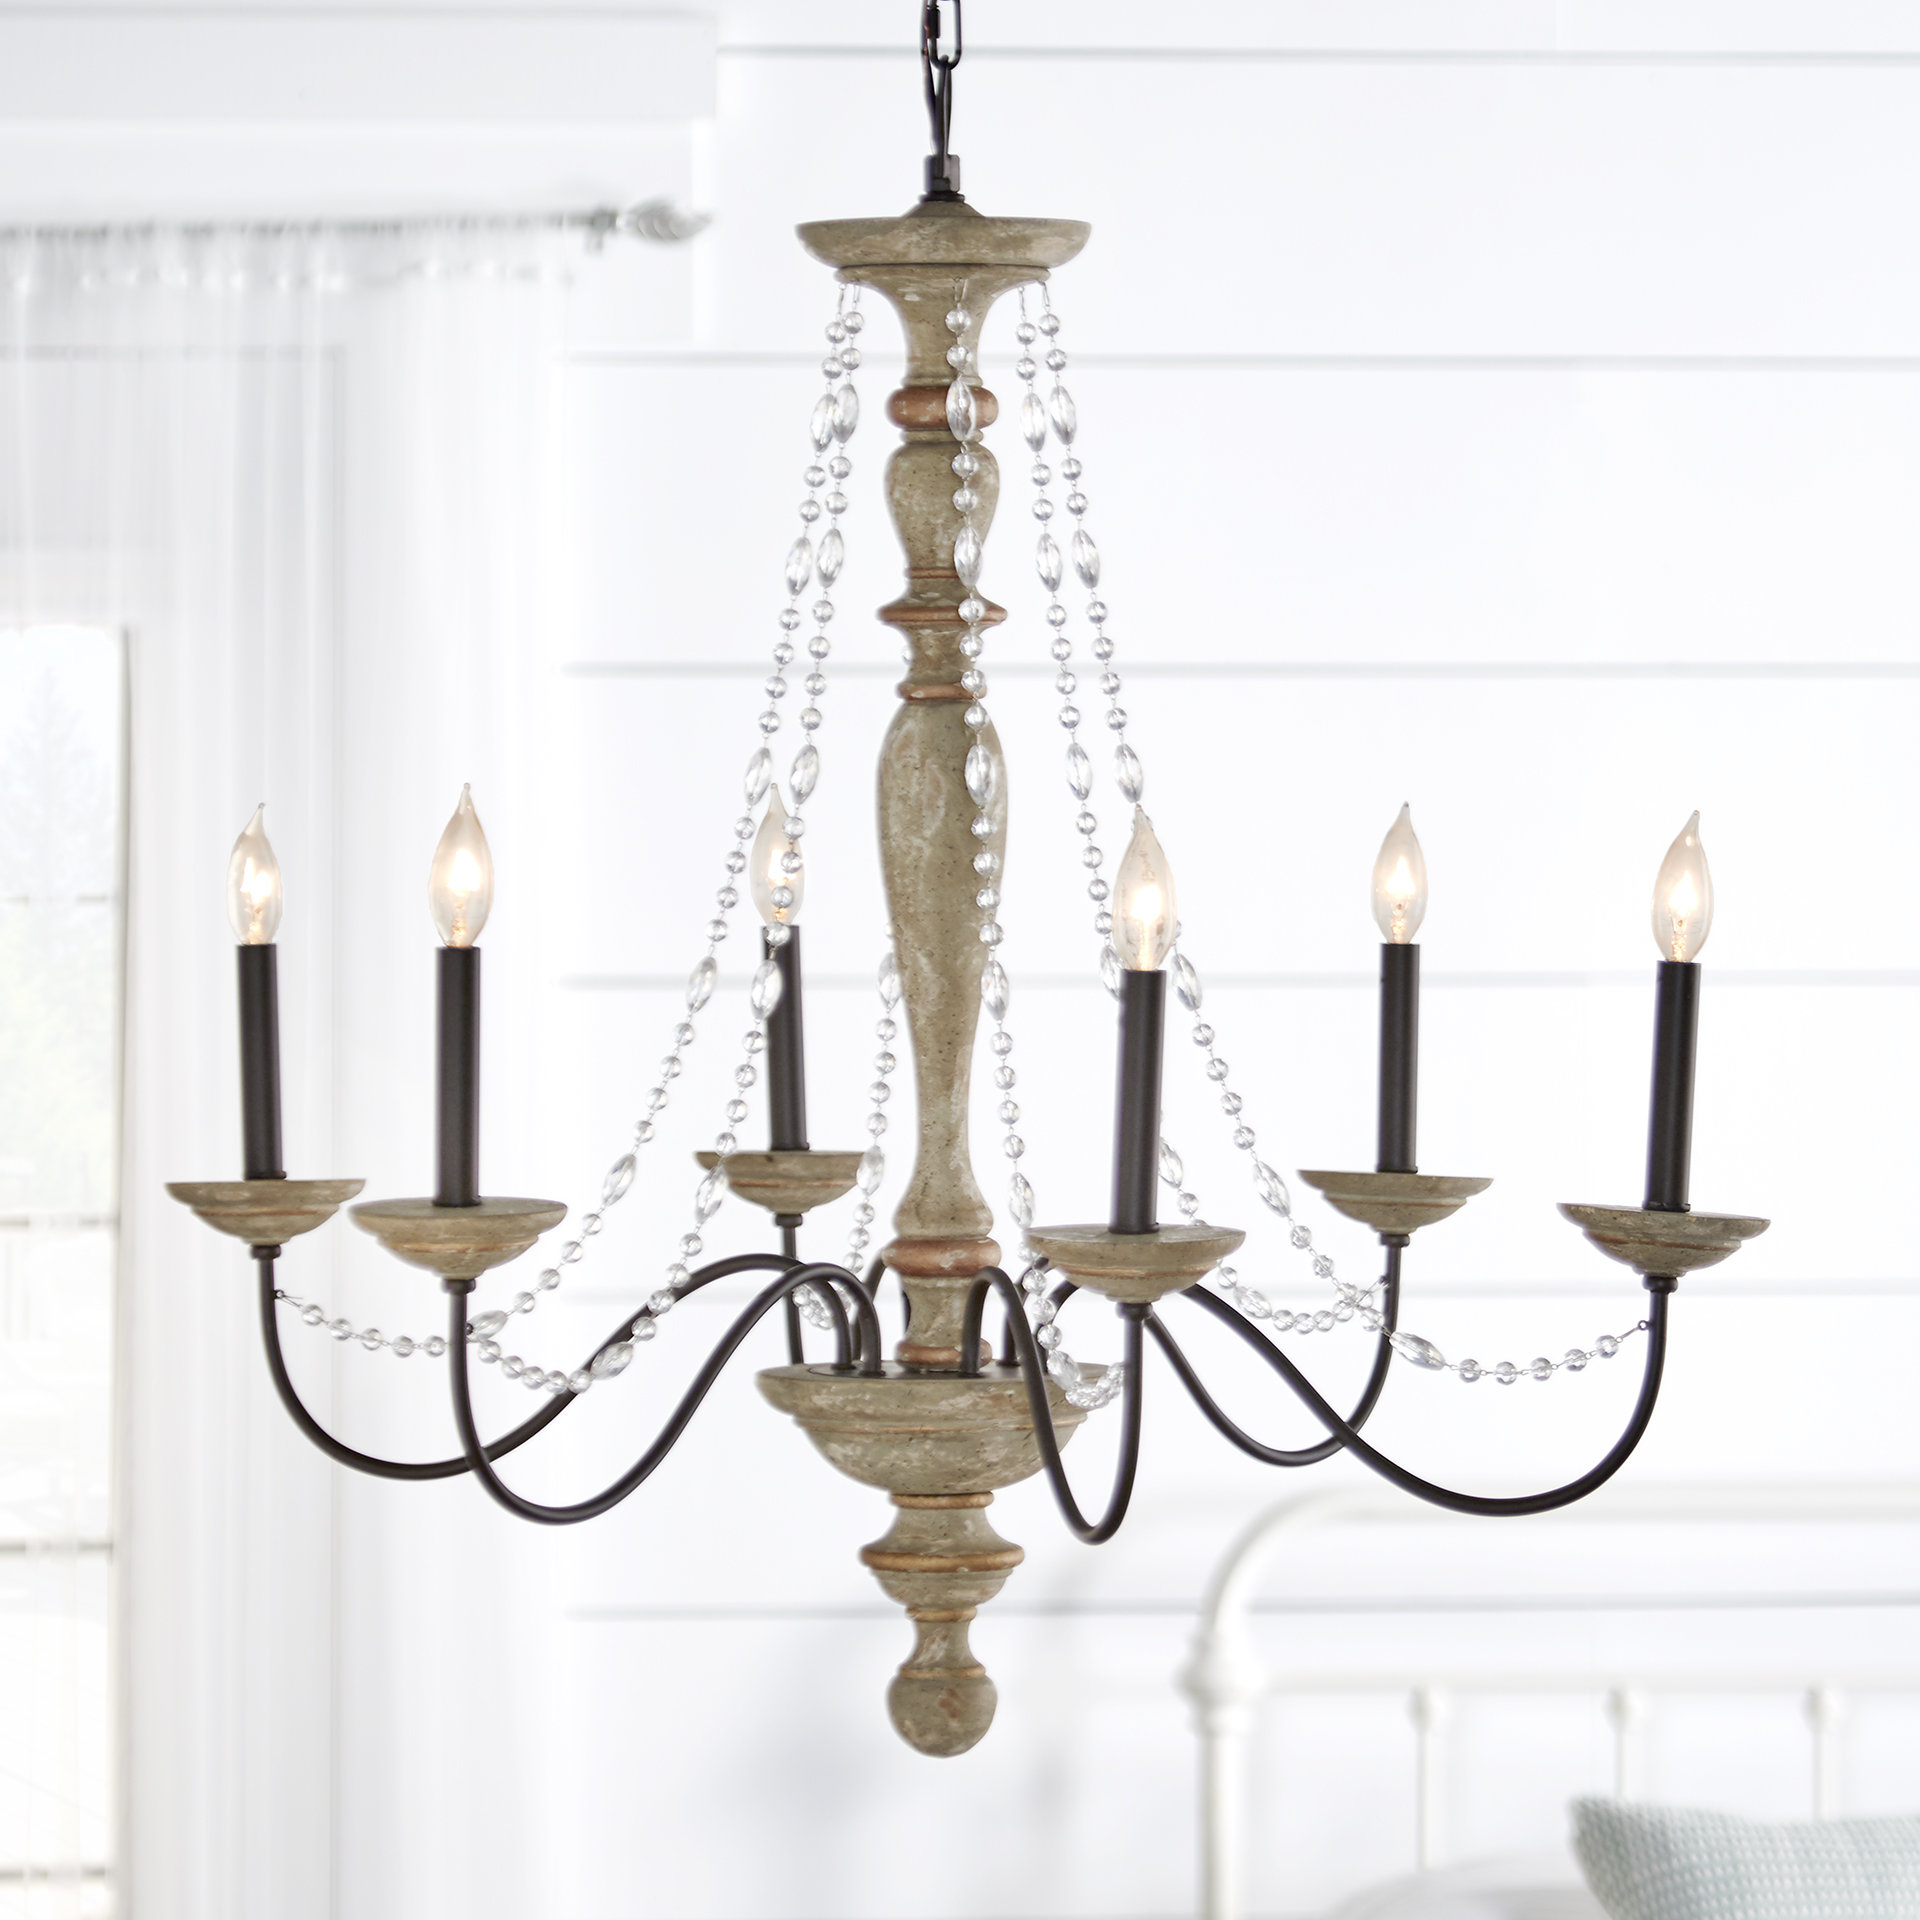 Well Liked Three Posts Brennon 6 Light Candle Style Chandelier Pertaining To Watford 6 Light Candle Style Chandeliers (View 19 of 20)